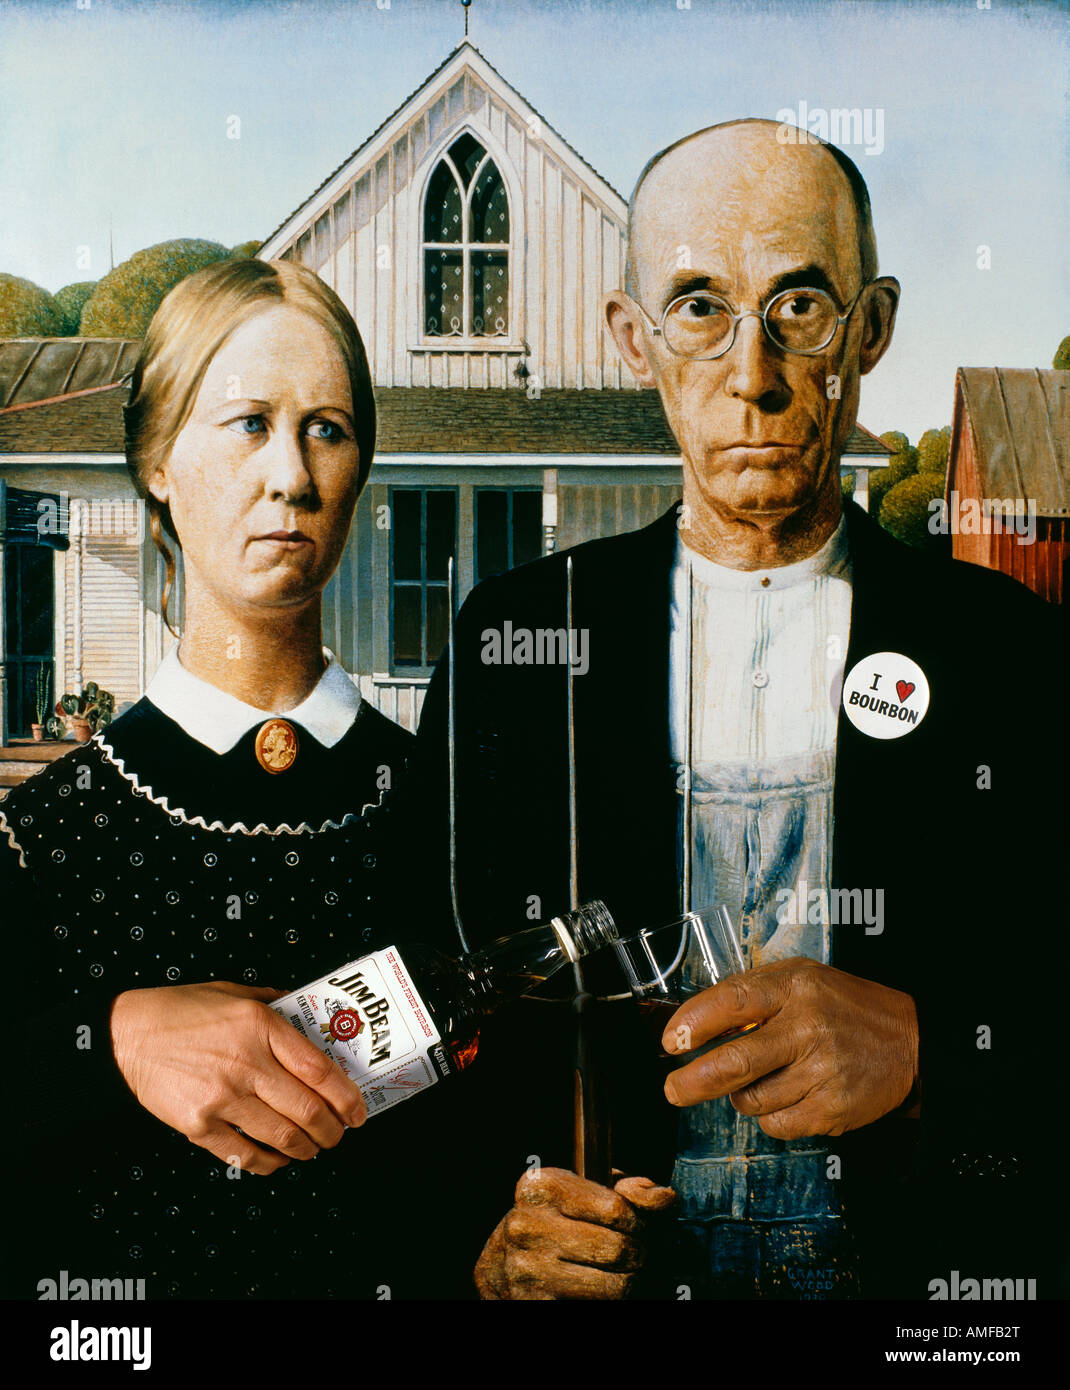 American Gothic Painting Pastiche With Added Hands Bottle And Glass Etc For Editorial Piece On Bourbon